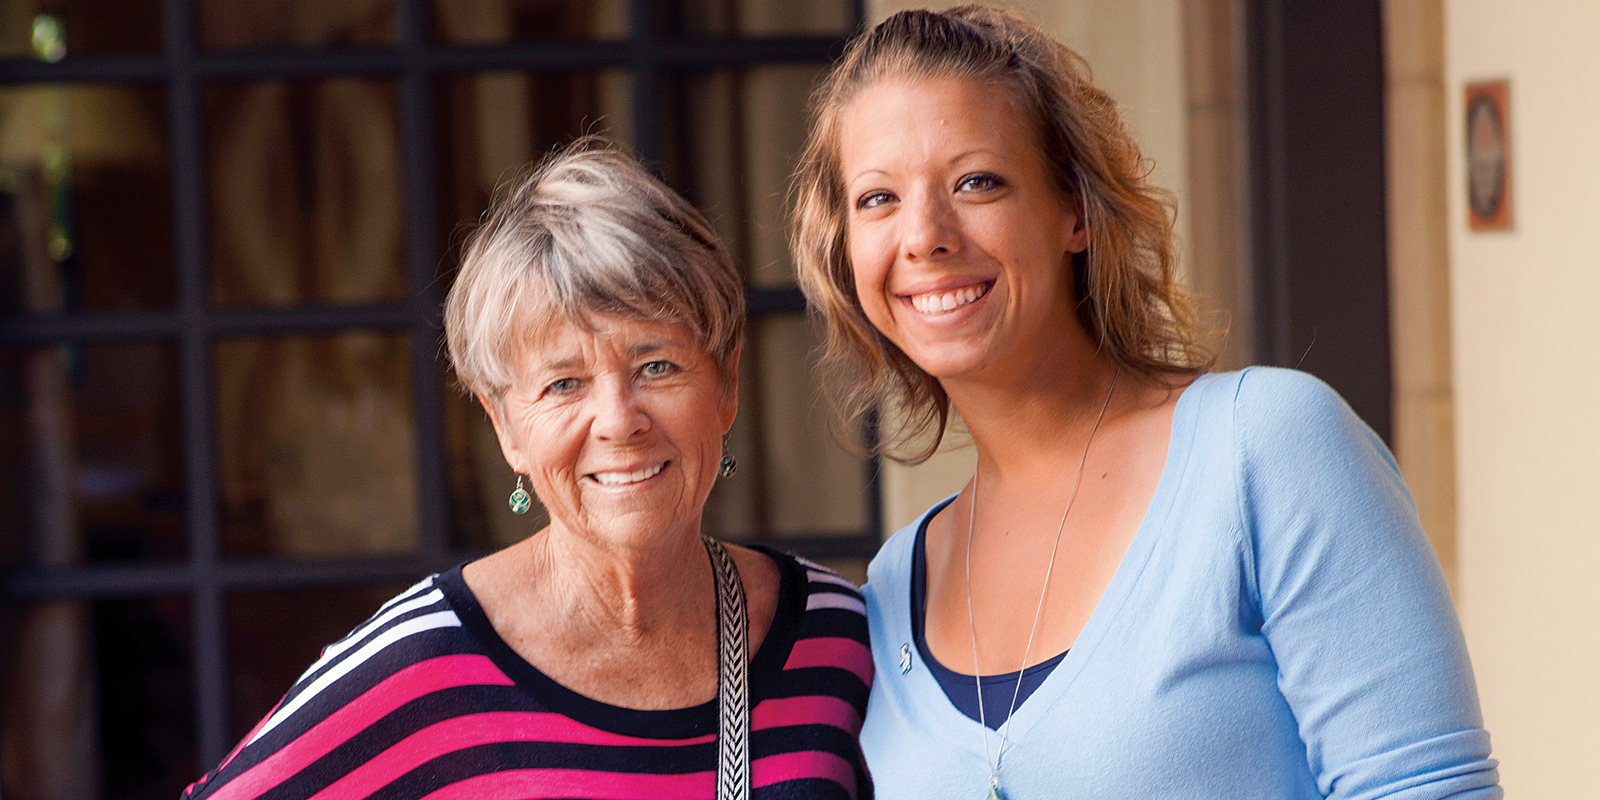 Delle Willett '64 and Amy Bodnar '06